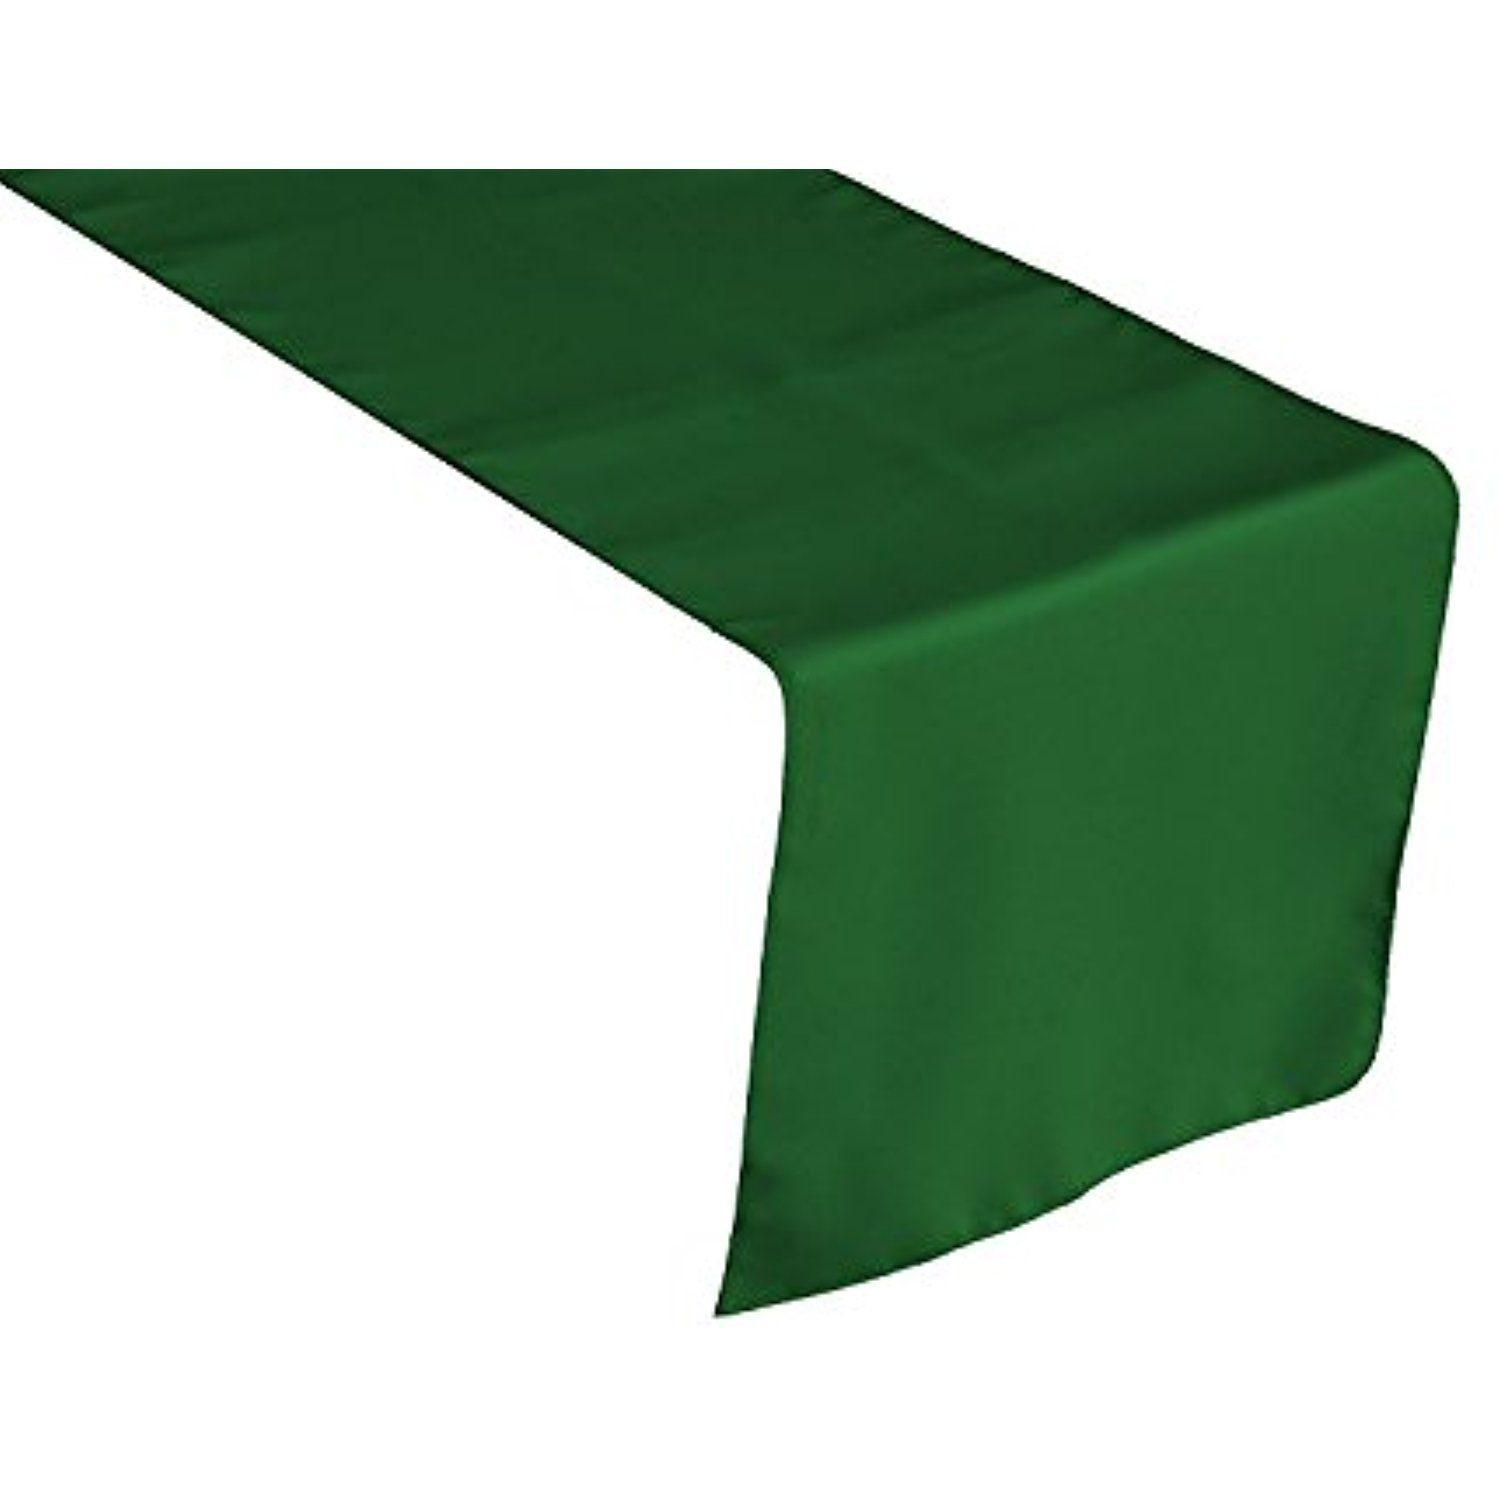 Table Runner Polyester 12 X 120 Inch By Broward Linens Kelly Green To View Further For This Item Visit The Image Lin Kitchen Dining Table Runners Broward